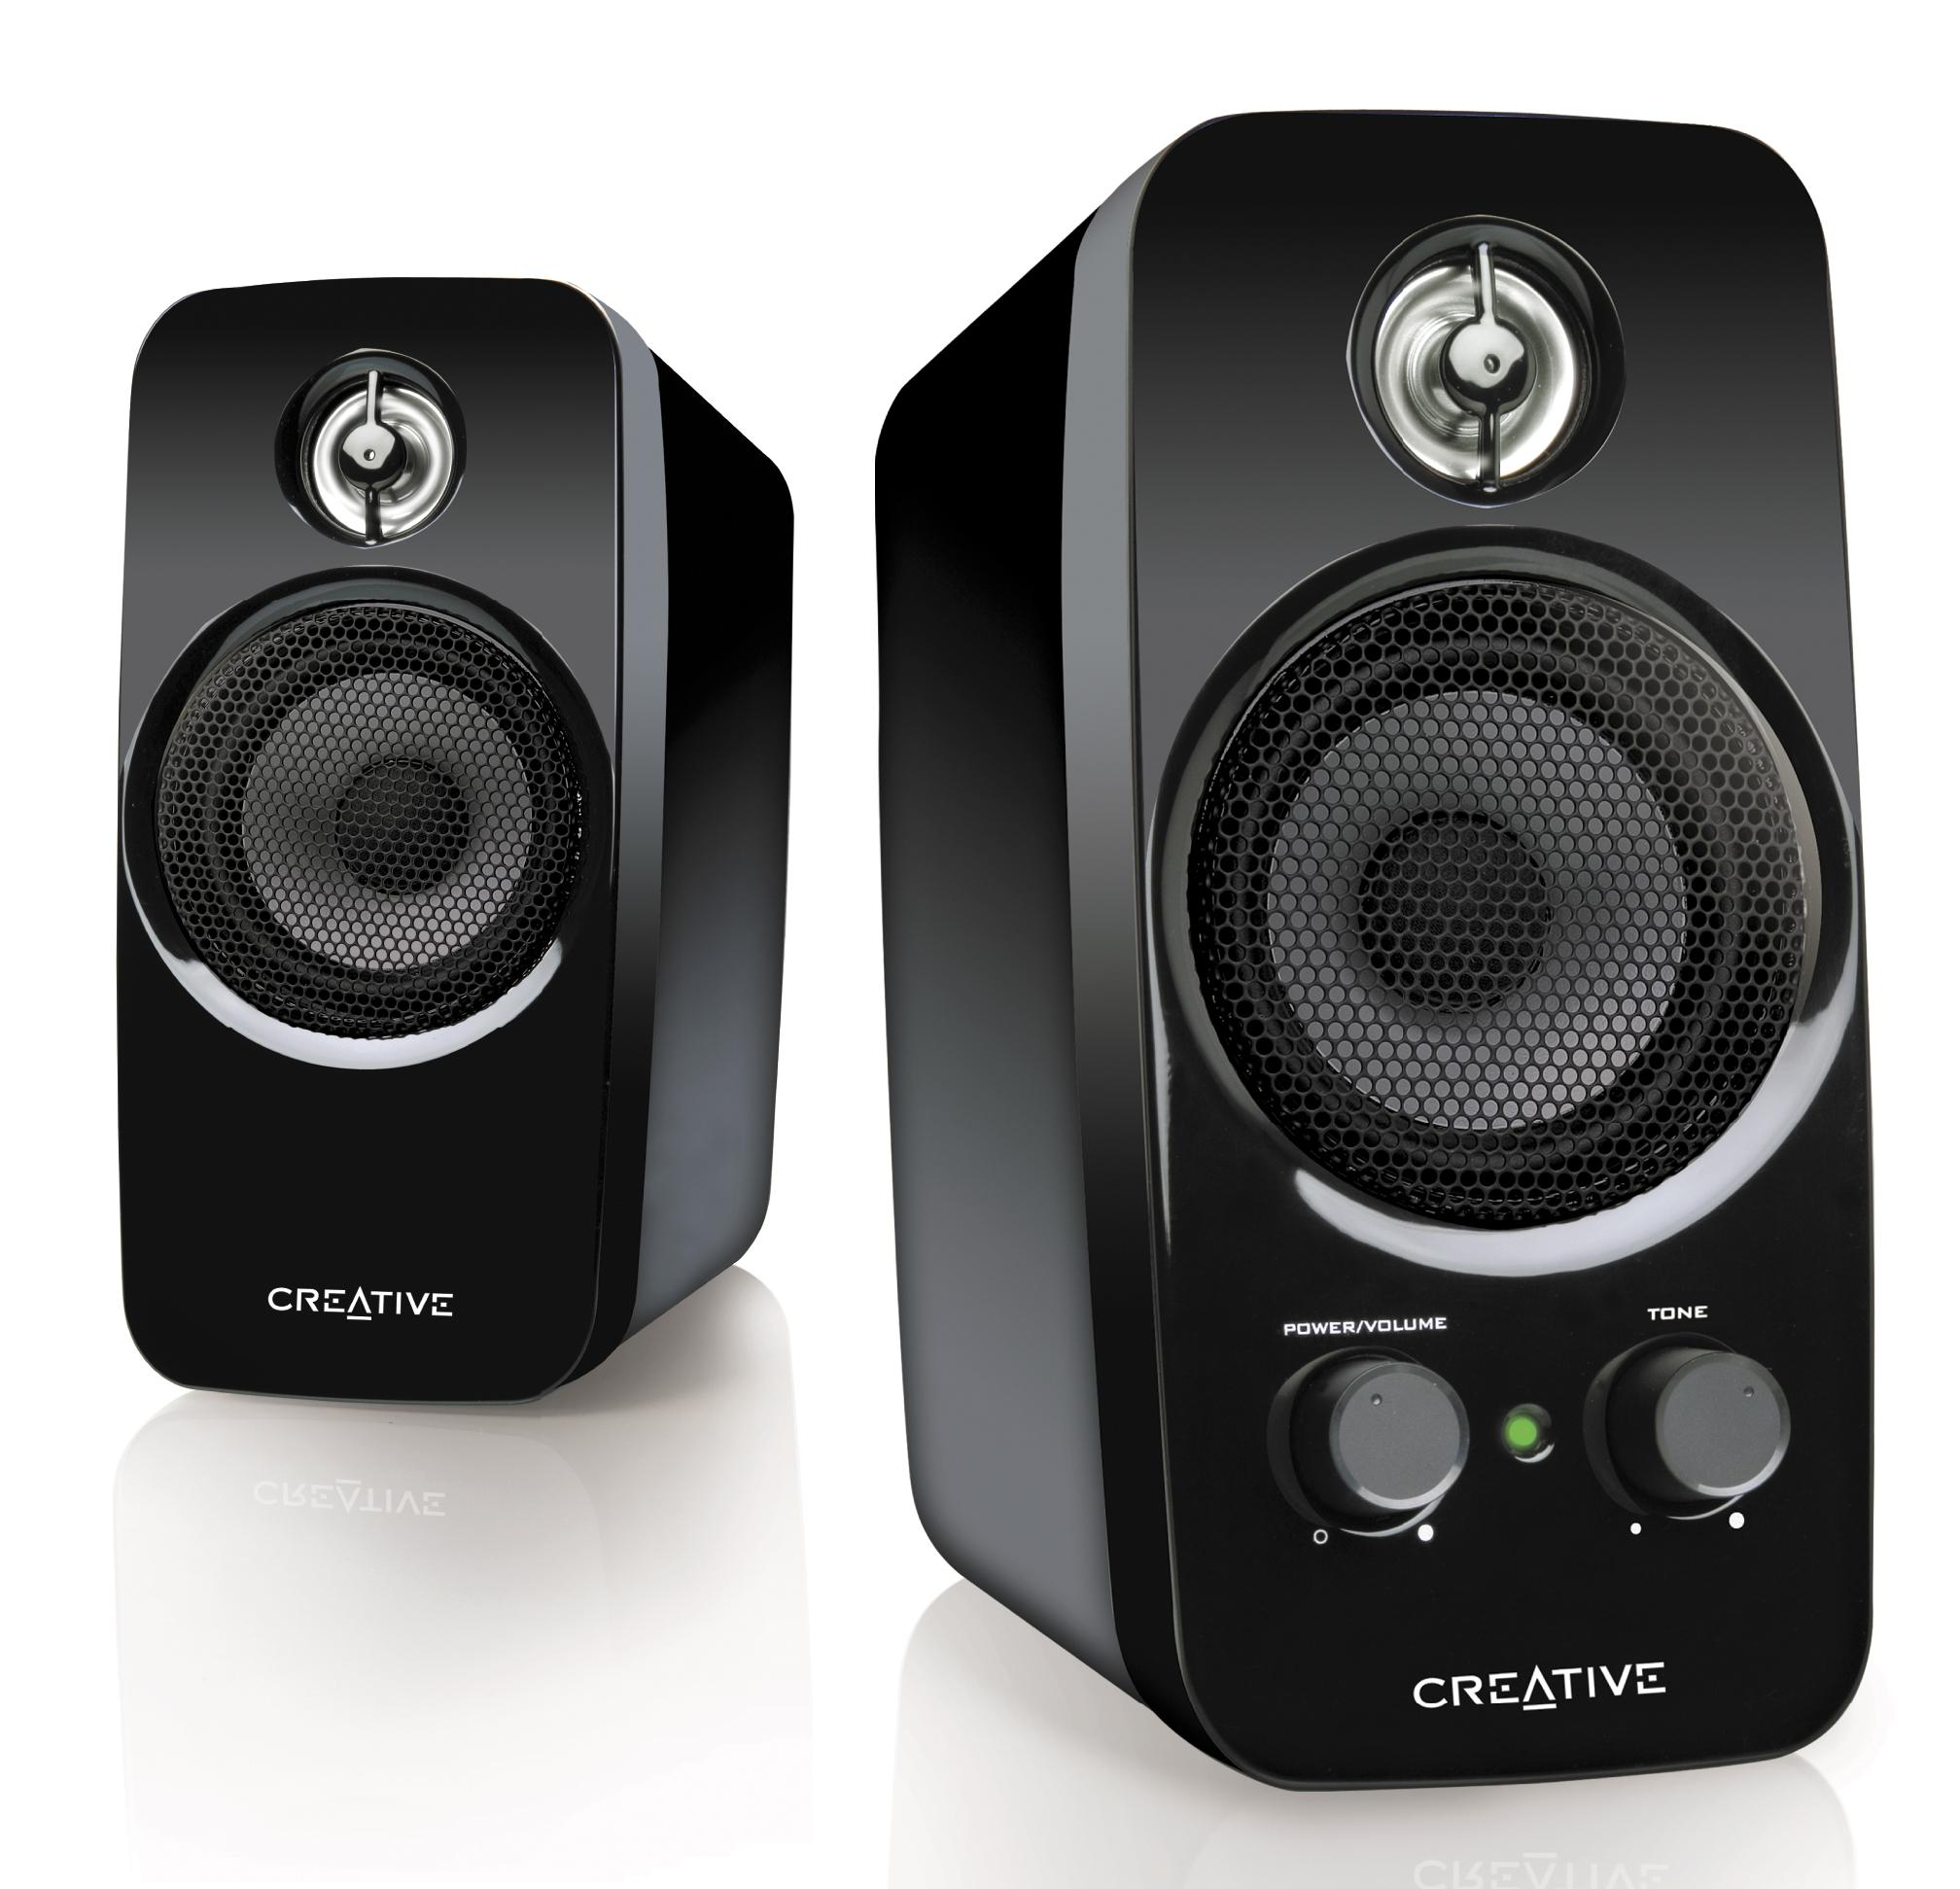 creative inspire t10 multimedia speakers review